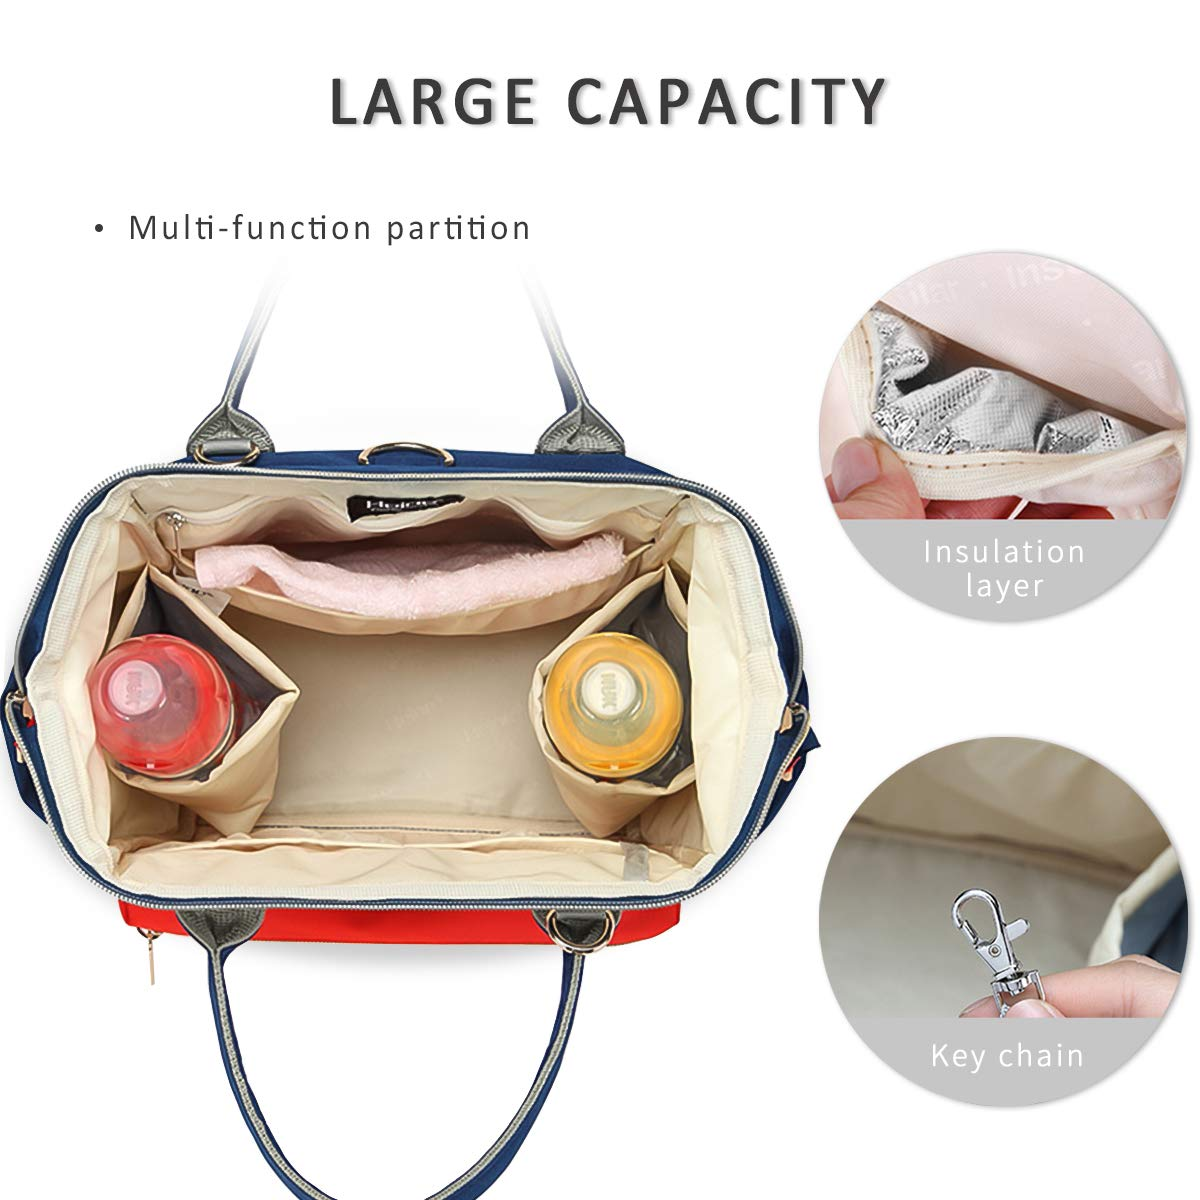 Black SONARIN Multifunctional Baby Nappy Changing Bag for Traveling,Satchel,Insulated Pockets,Waterproof,Large Capacity,Stylish and Durable